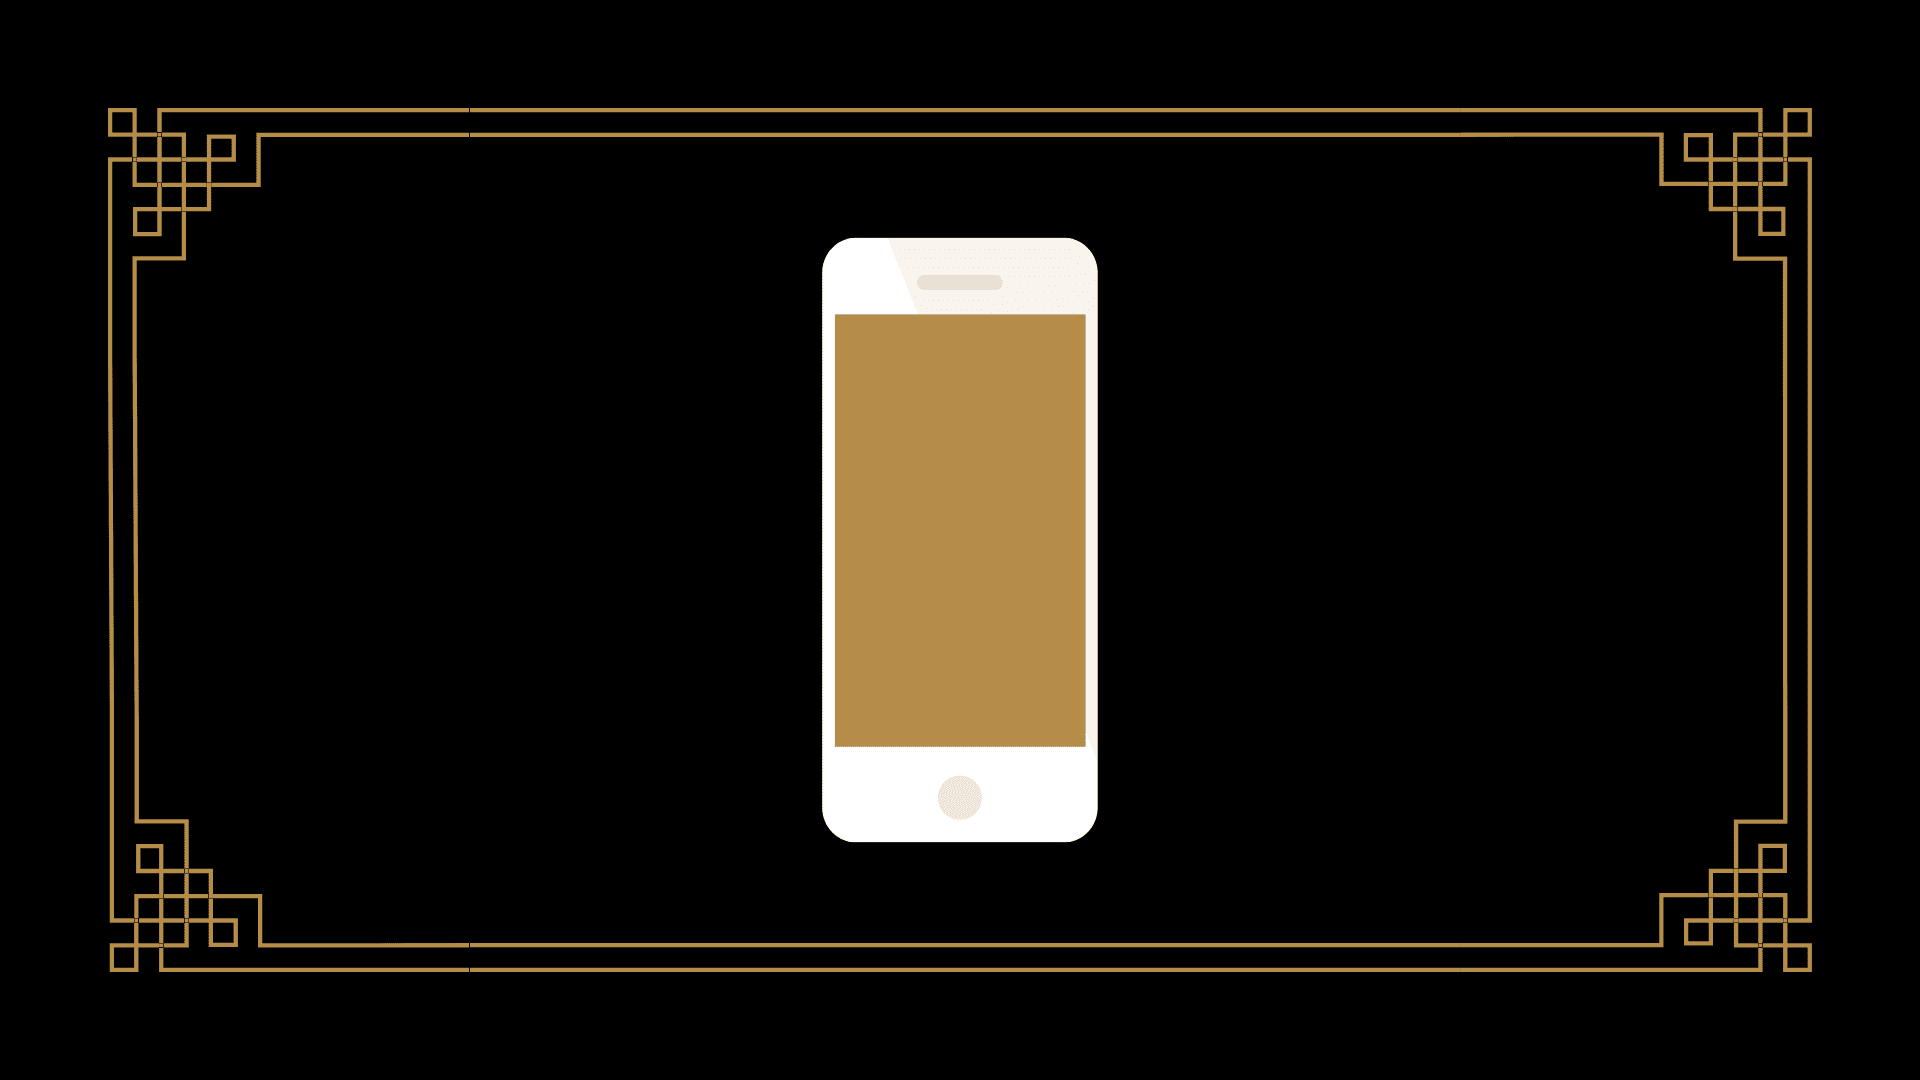 An iphone on a black background with a golden screen.